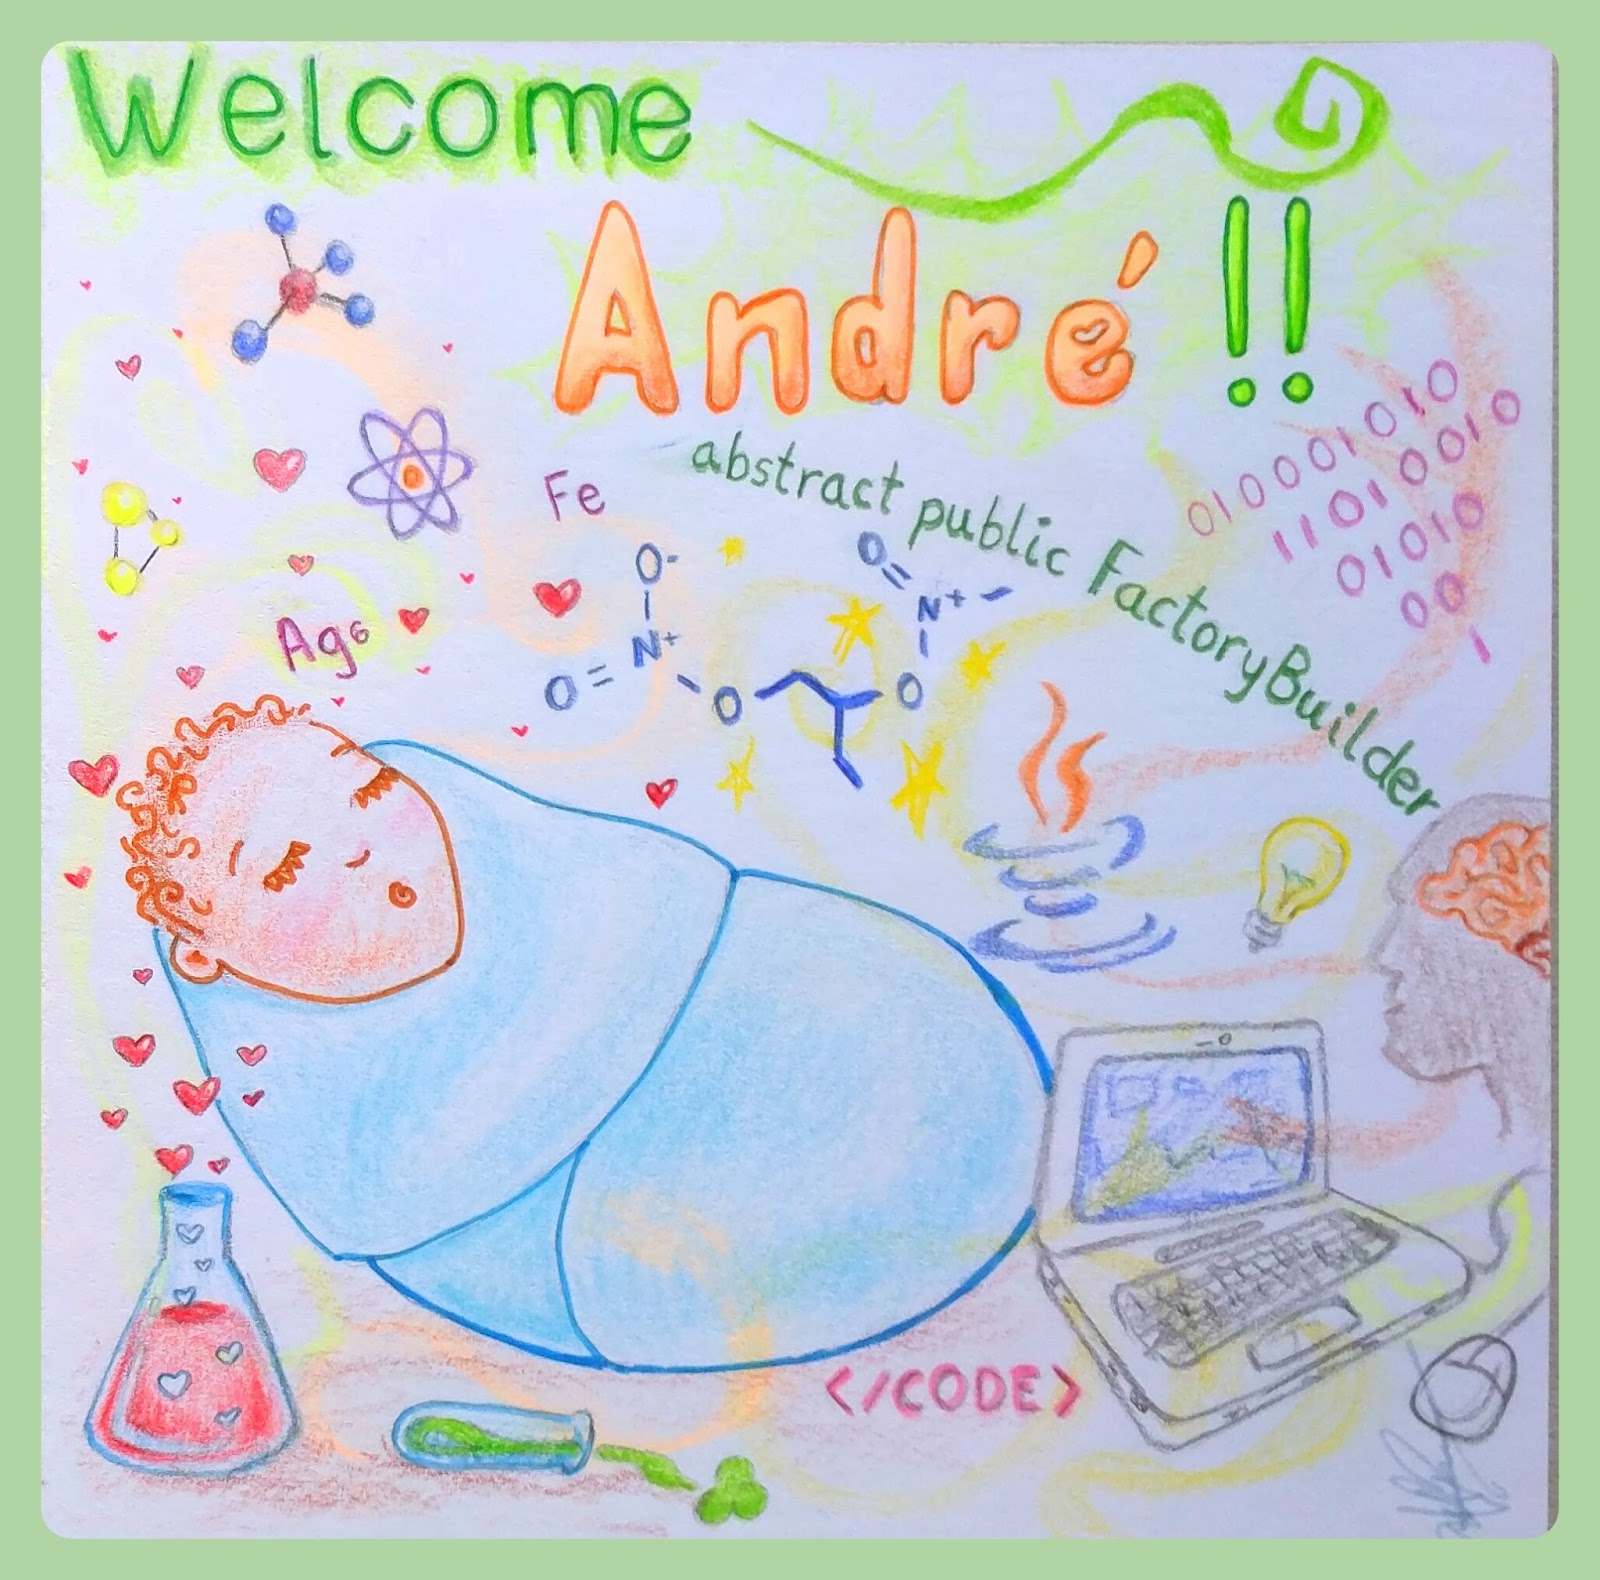 Some ideas for cards welcome andr elizabeth casua the 33zth greeting card new born babies card andr elizabeth casua the 33zth order kristyandbryce Choice Image